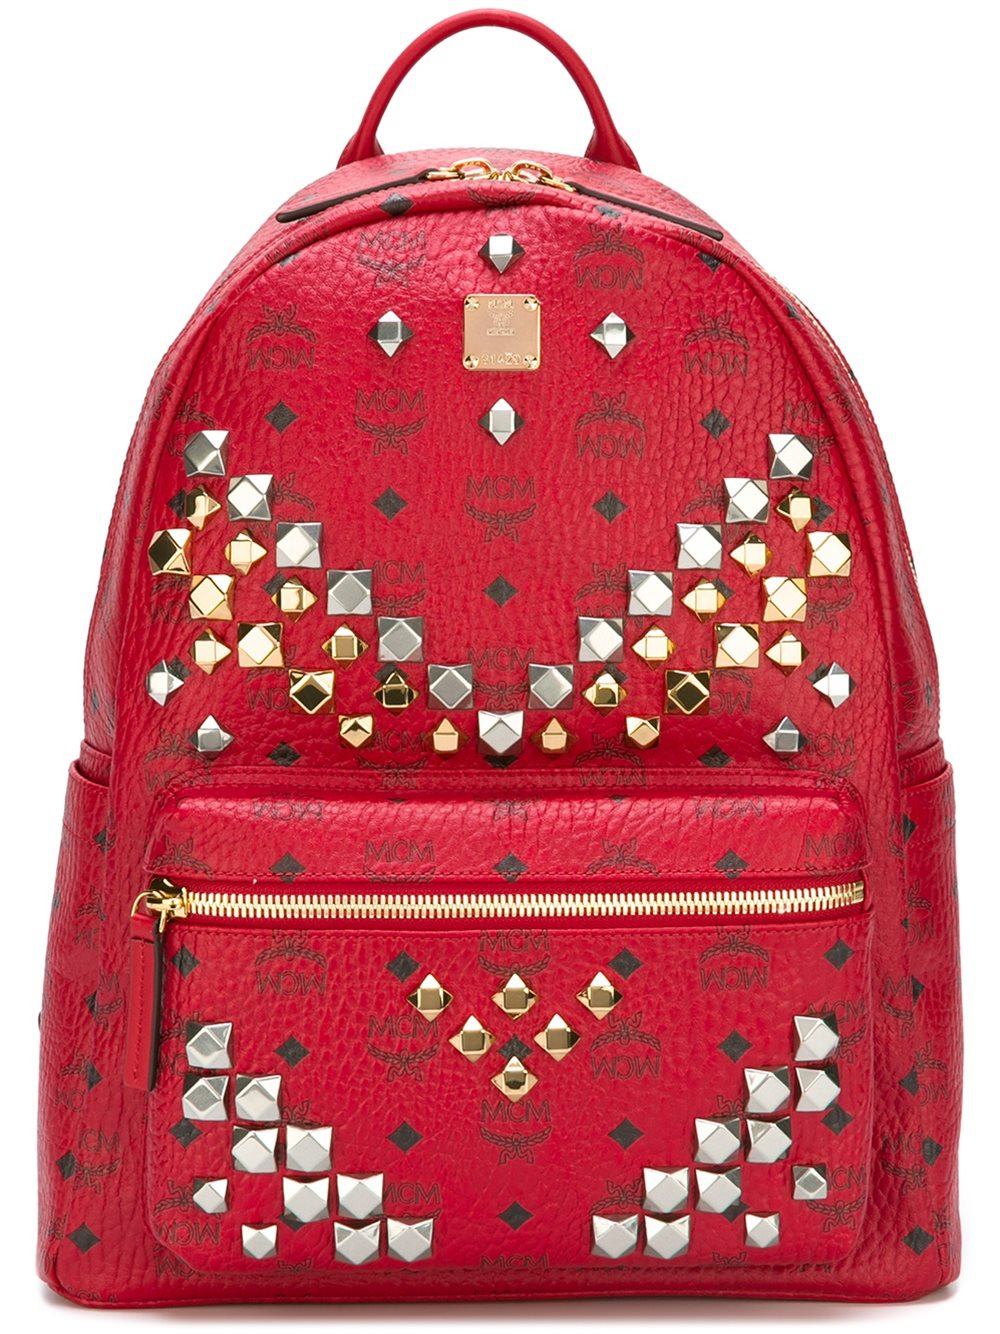 Lyst Mcm Studded Backpack In Red